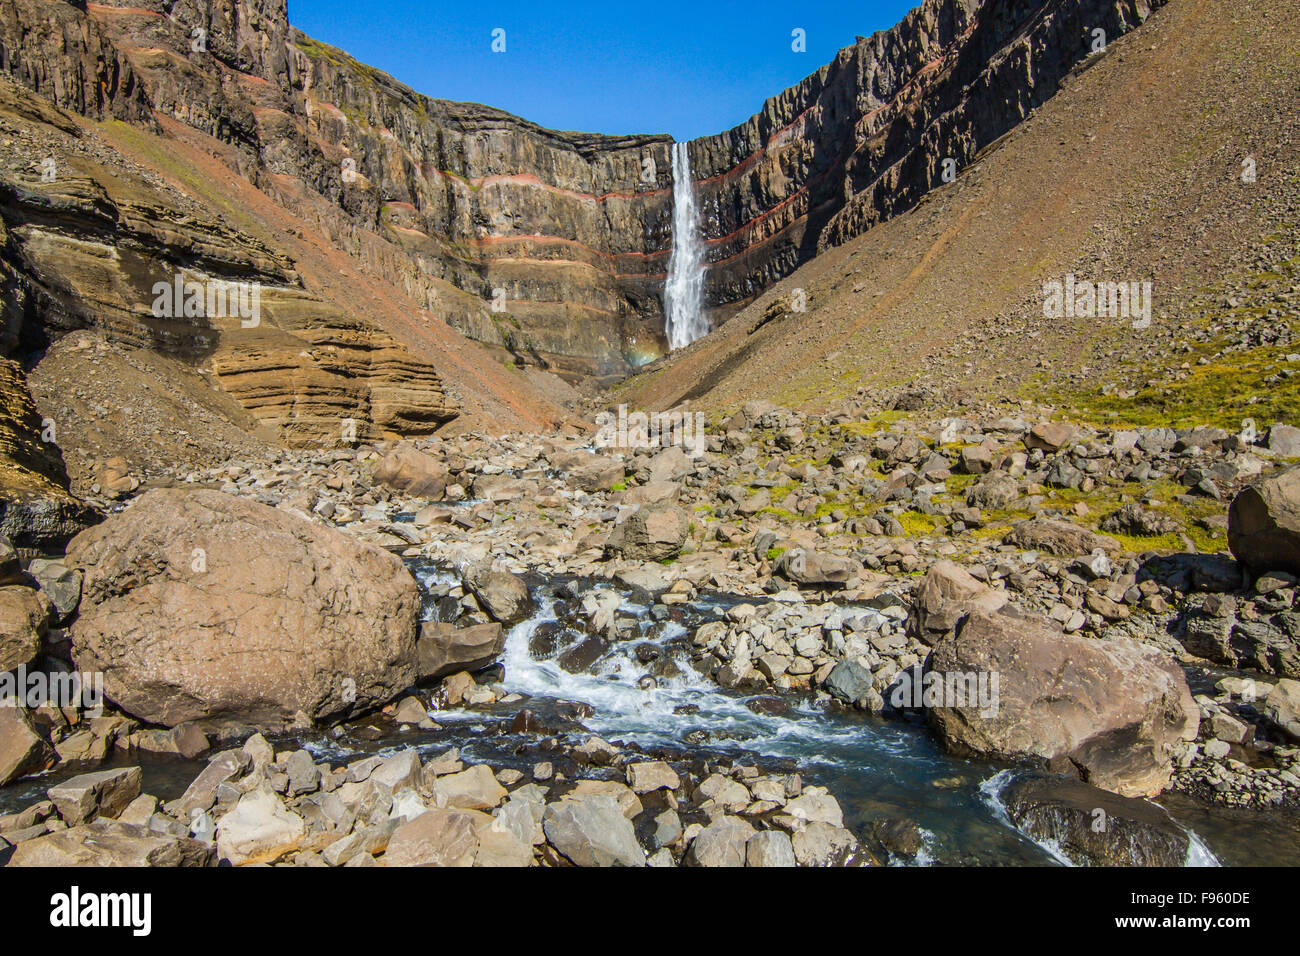 Hengifoss waterfall surrounded by basaltic strata with thin, red layers of clay and the Hengifossá river in - Stock Image